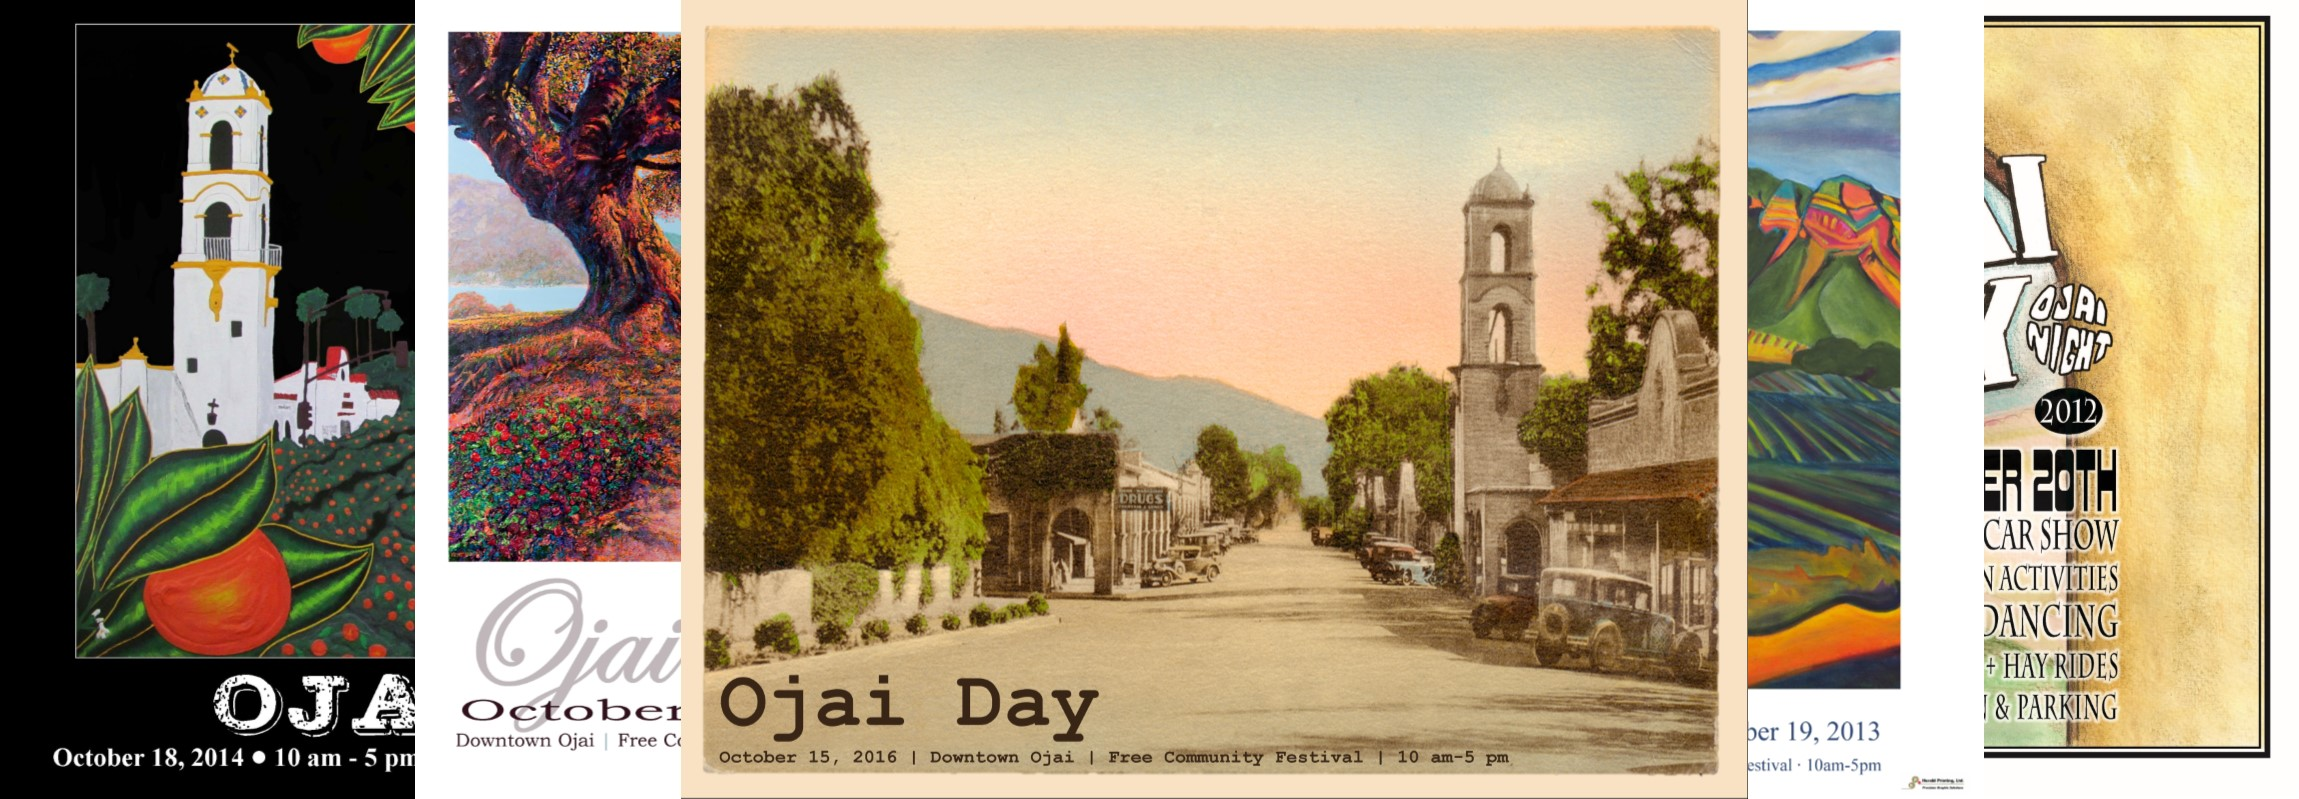 Ojai Day Posters!